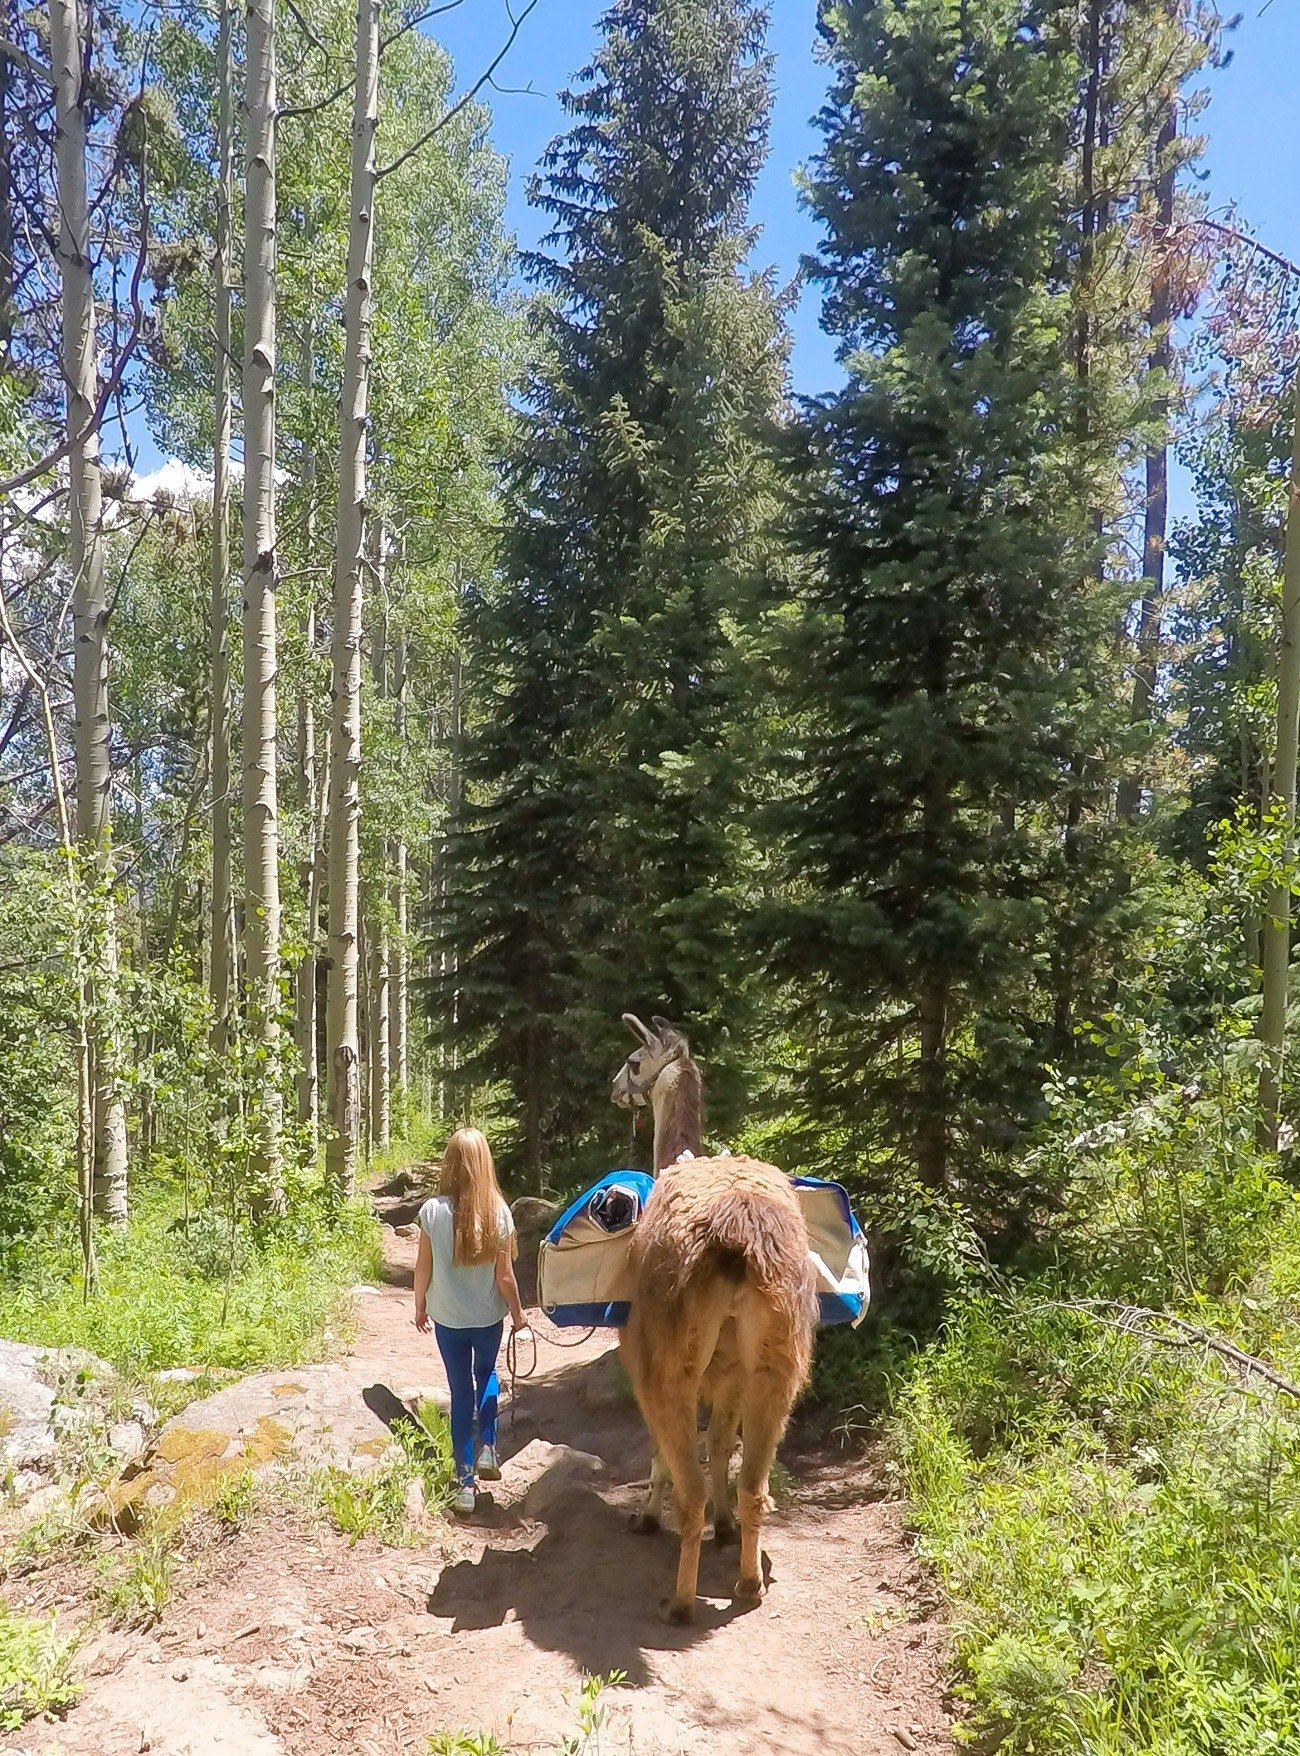 A great thing to do in Vail, Colorado? Go trekking and have lunch with a llama. Yes!